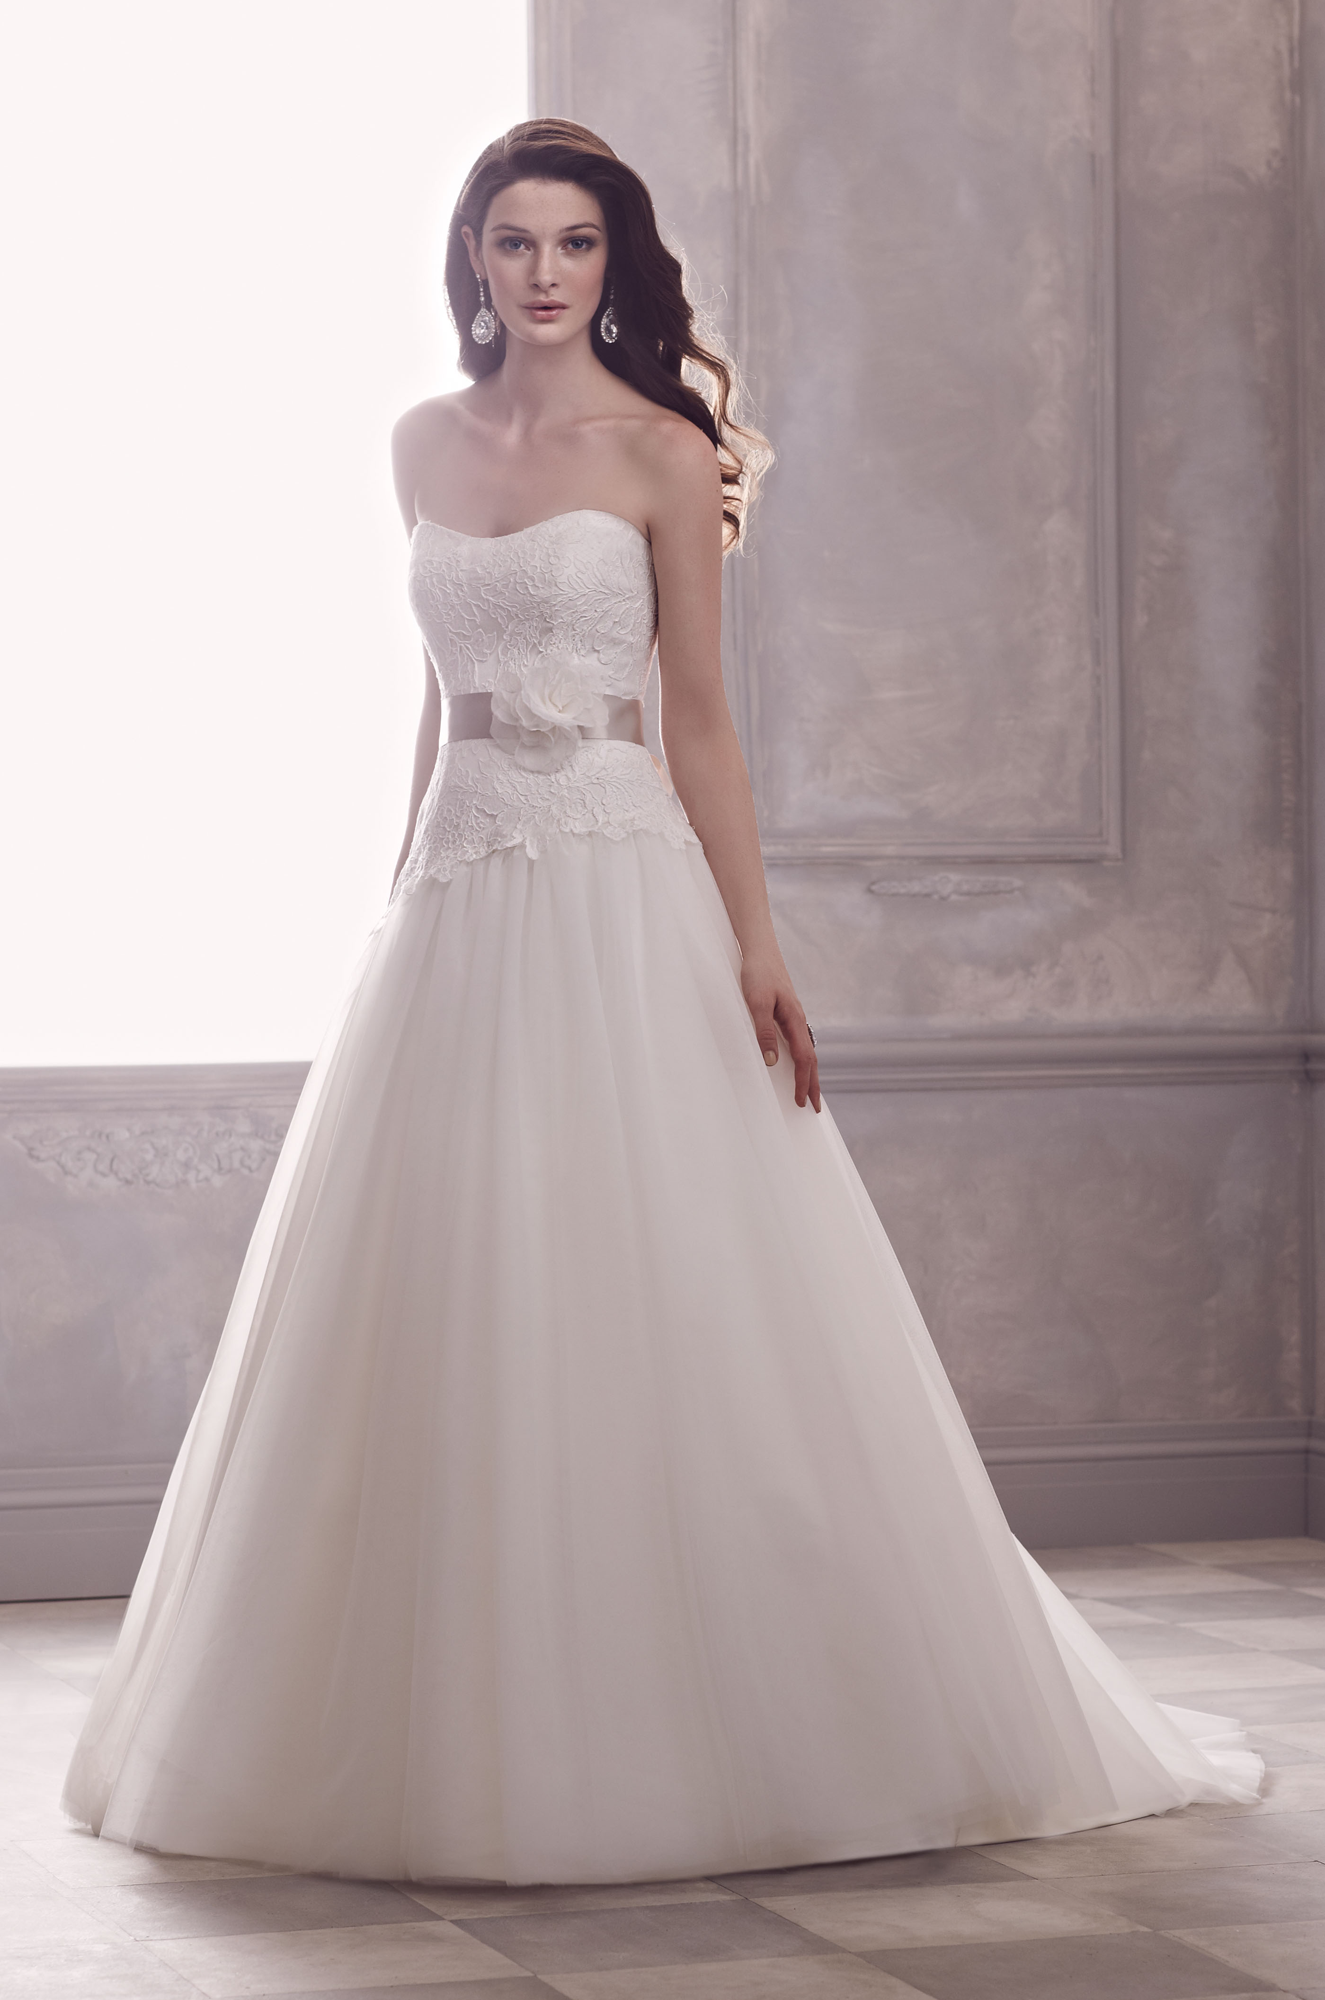 Gown paloma blanca wedding gowns pinterest wedding